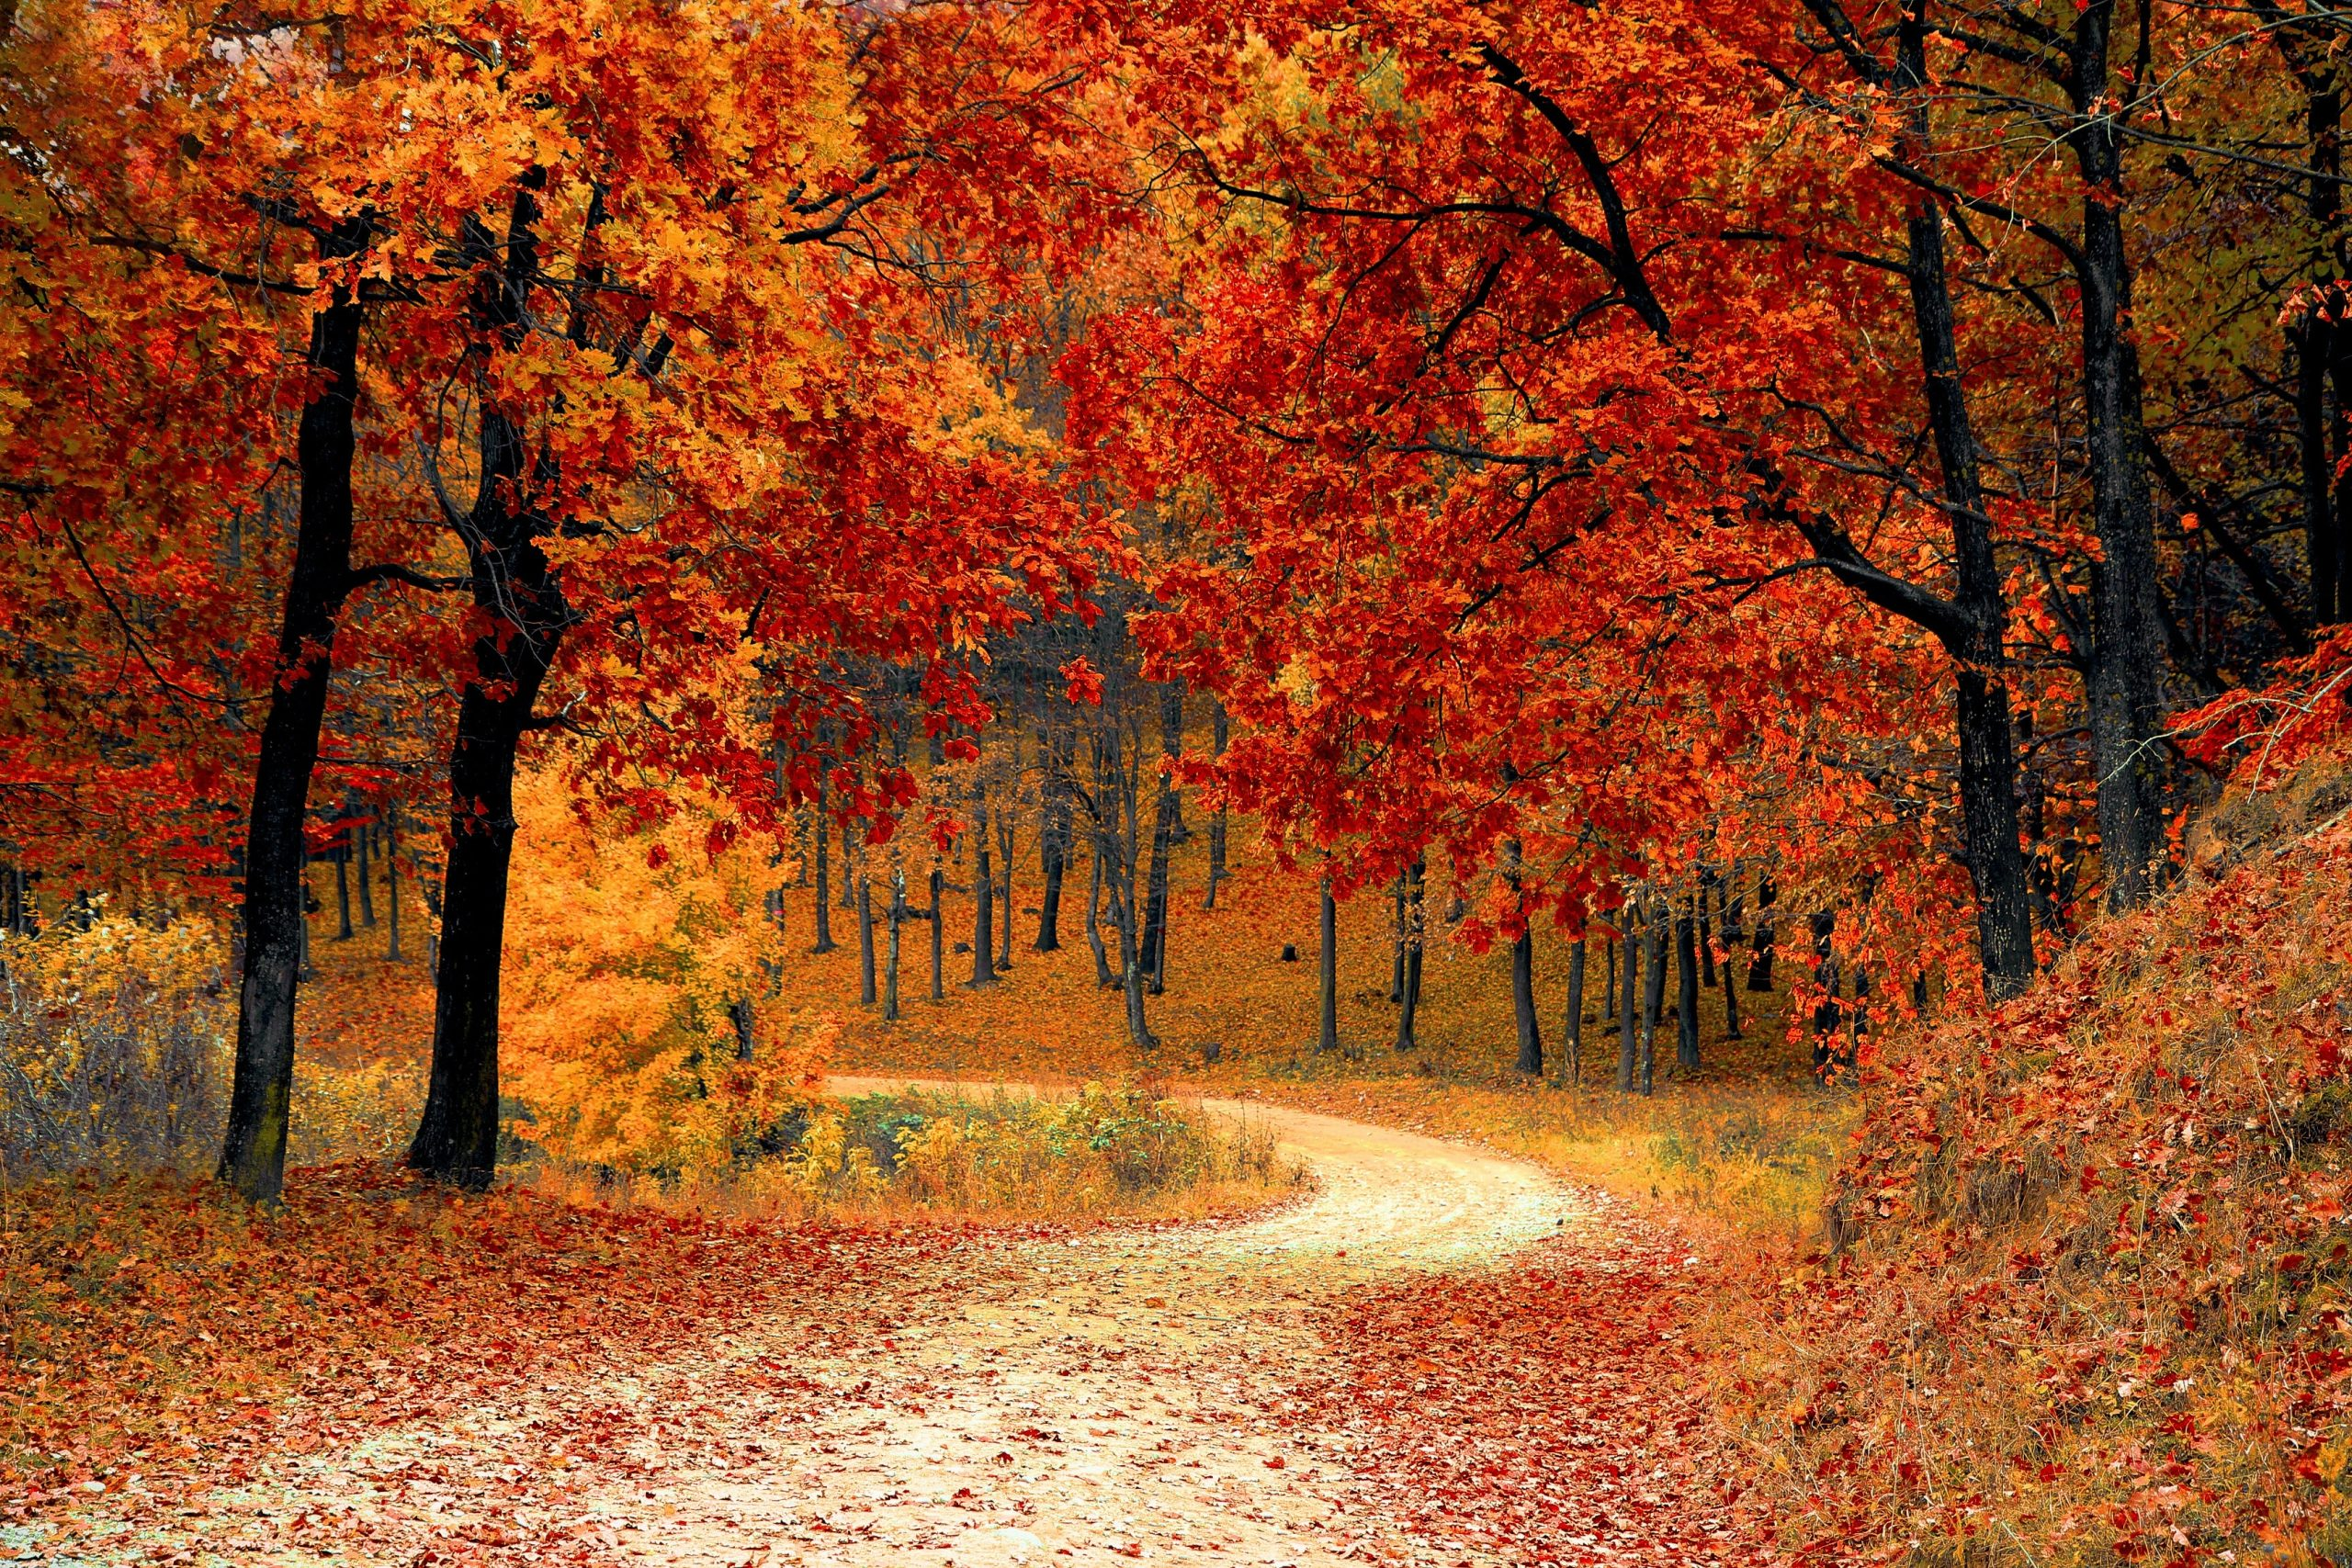 Autumn-red-leaves